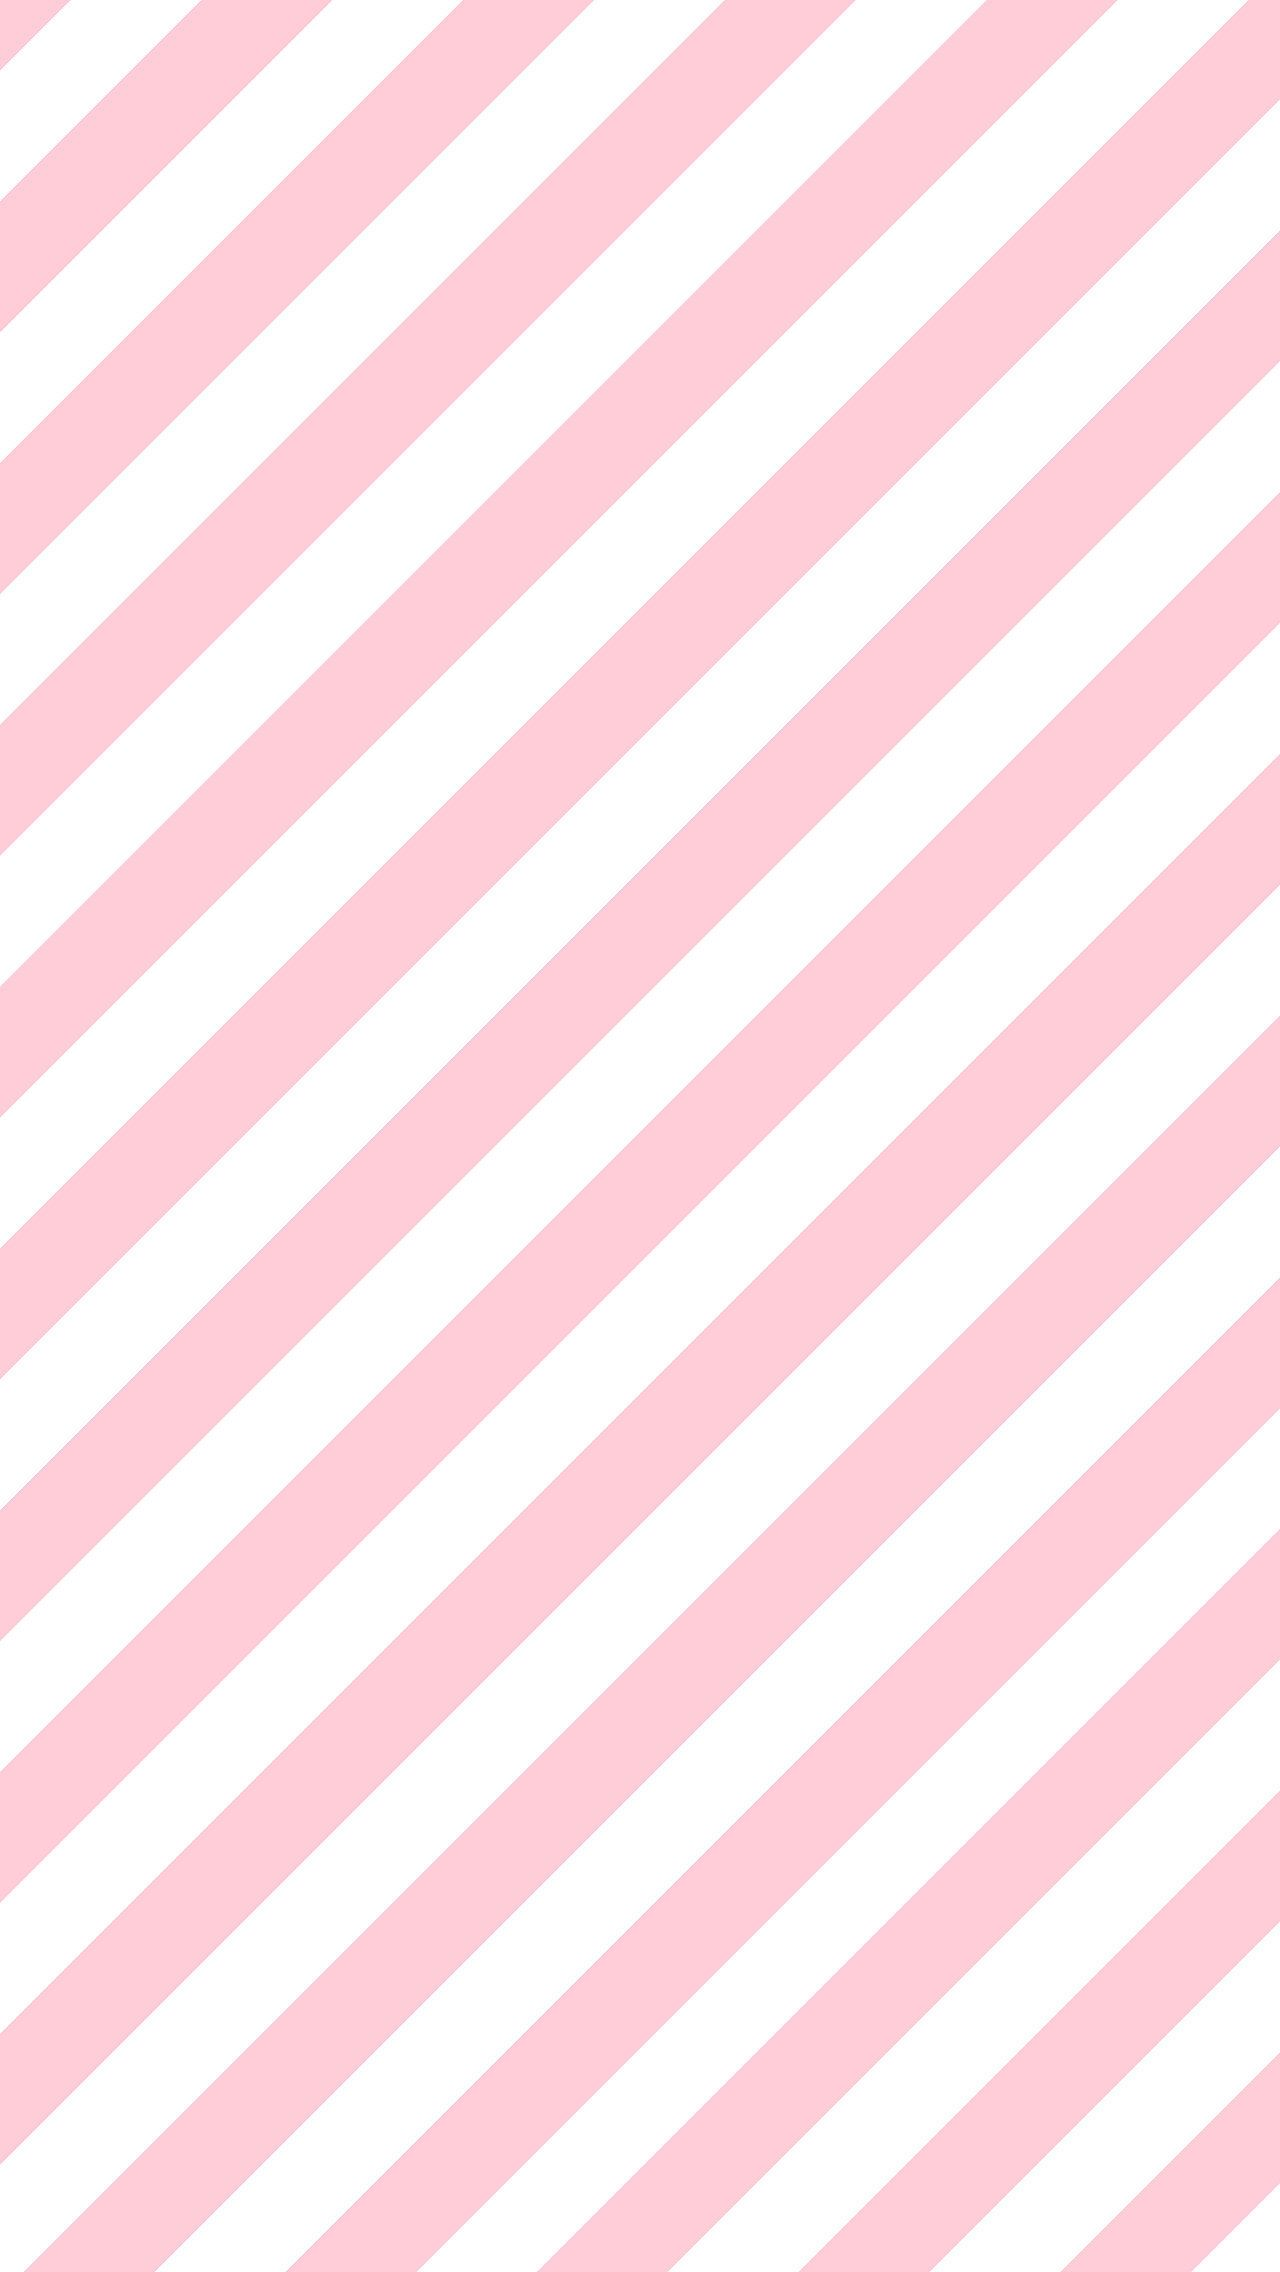 Pink striped wallpaper hd - Pink Stripes